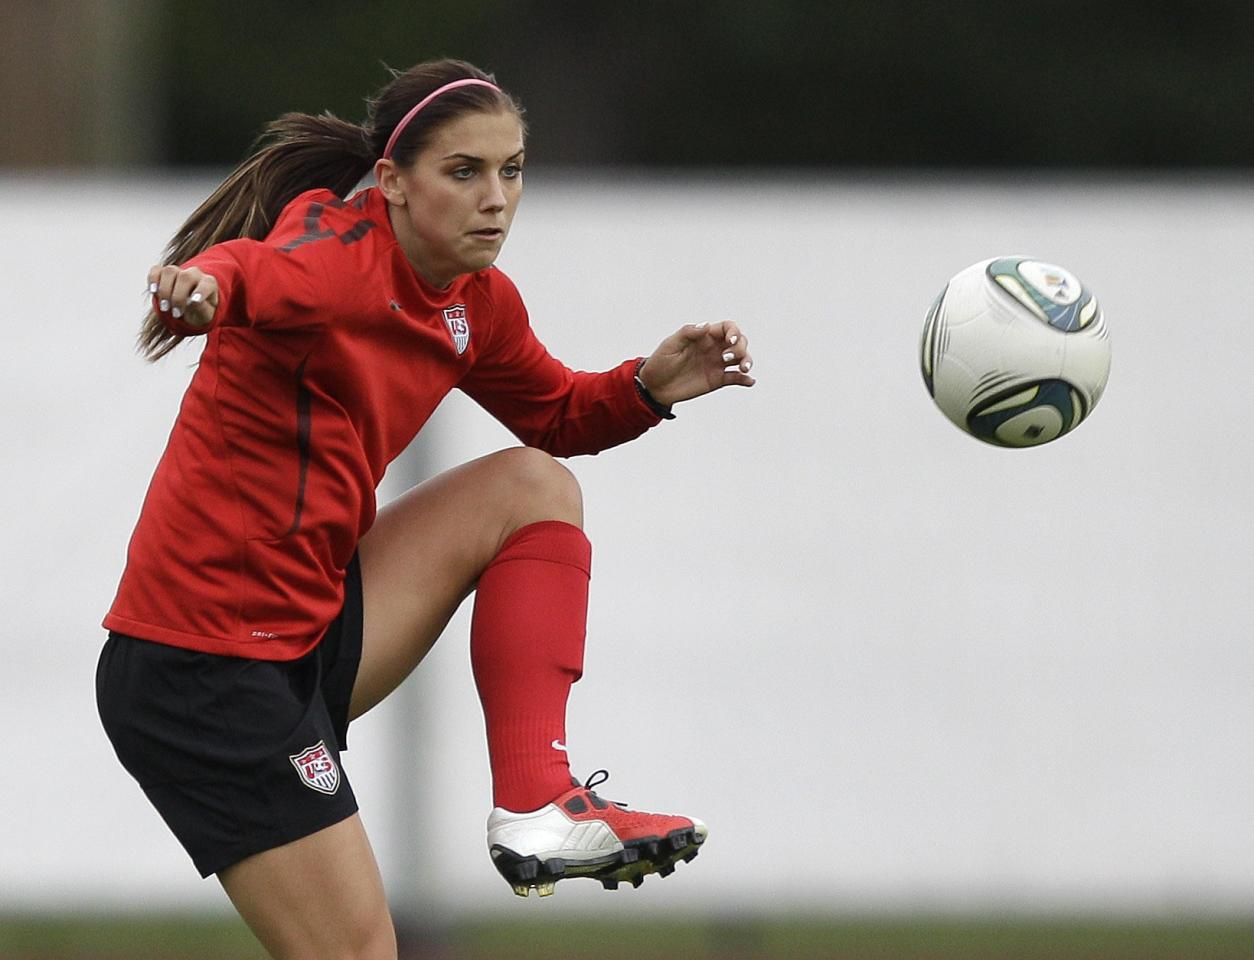 United States' Alex Morgan traps a pass during a training session in preparation for the final match against Japan during the WomenÕs Soccer World Cup in Frankfurt, Germany, Thursday, July 14, 2011. (AP Photo/Marcio Jose Sanchez)